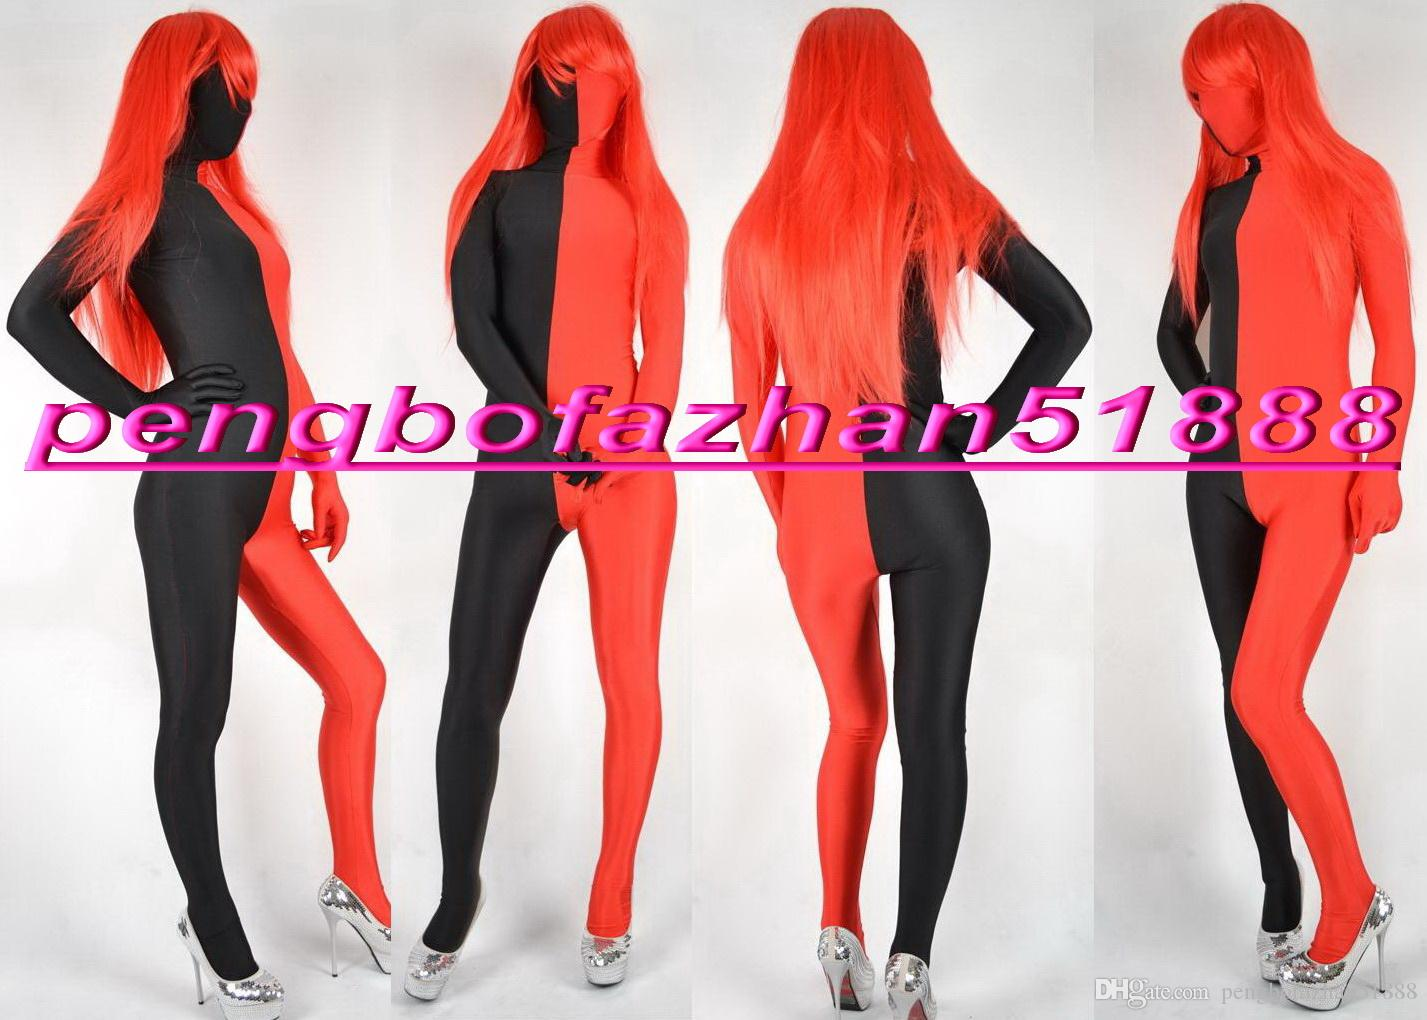 33bd6af2ecfe 2019 Sexy Suit Outfit New Black Red Lycra Spandex Catsuit Costumes Unisex  Sexy Bodysuit Costumes Halloween Party Fancy Dress Cosplay Suit P211 From  ...